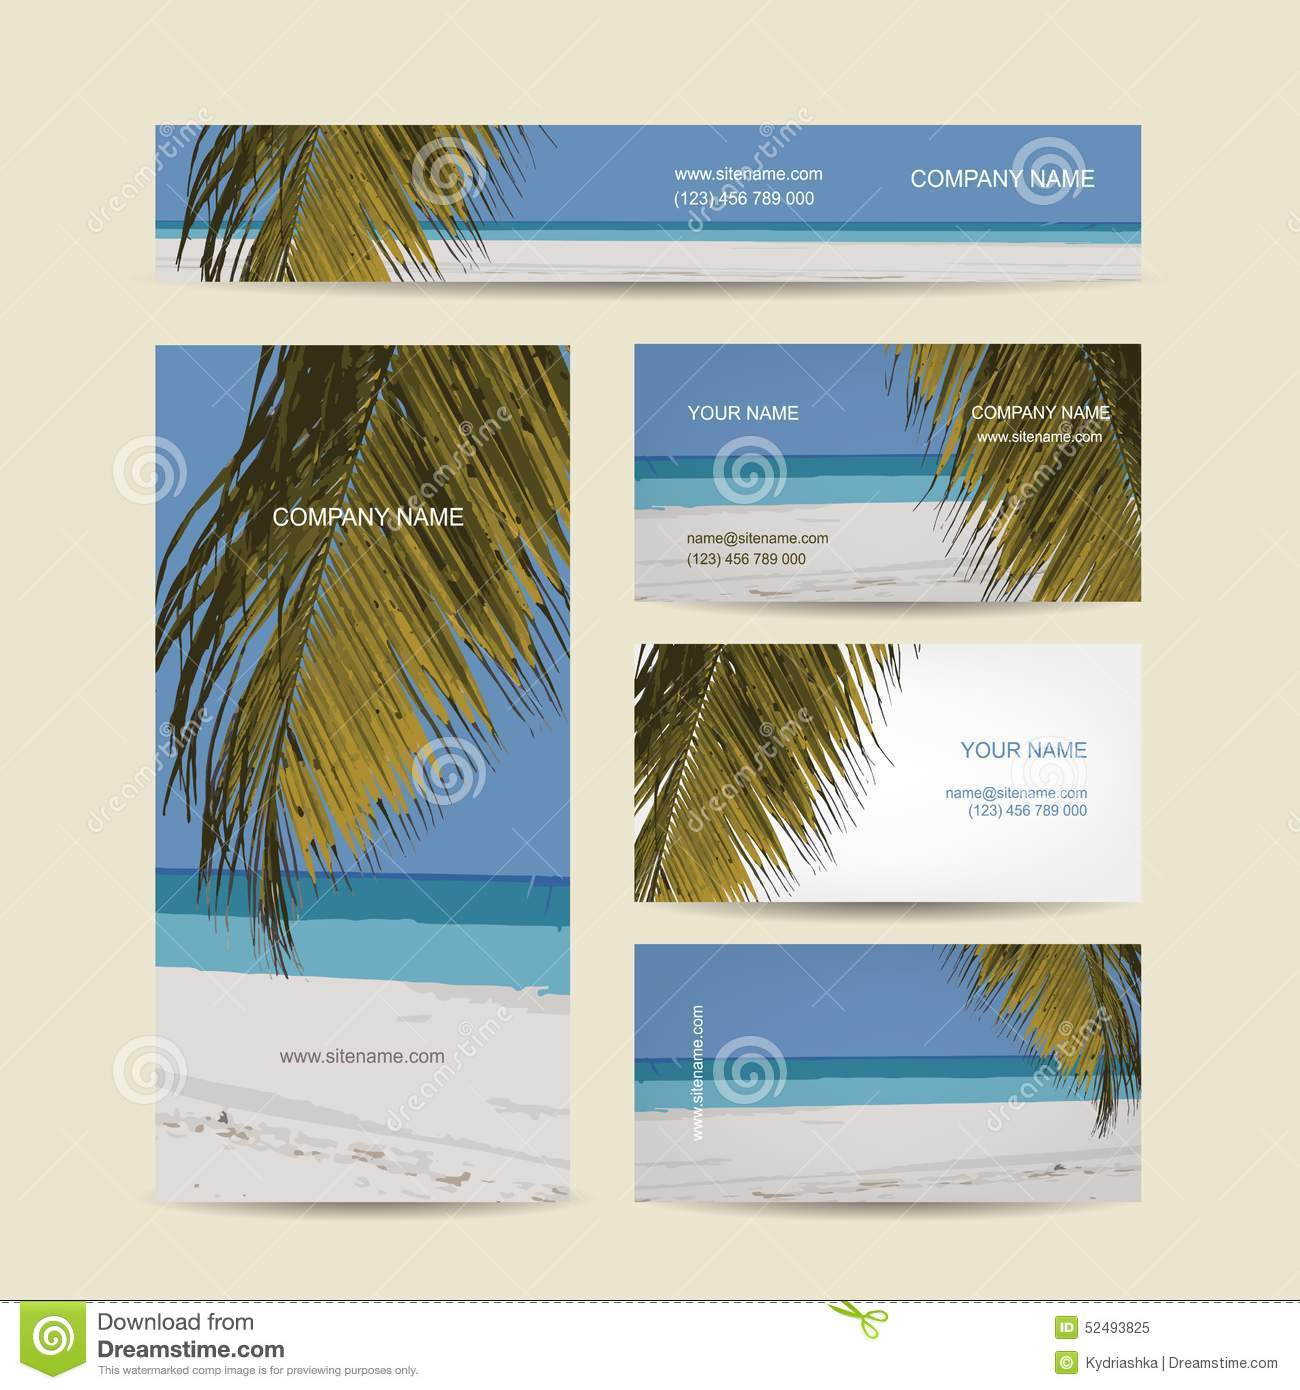 download business cards design tropical island stock vector illustration of ocean poster